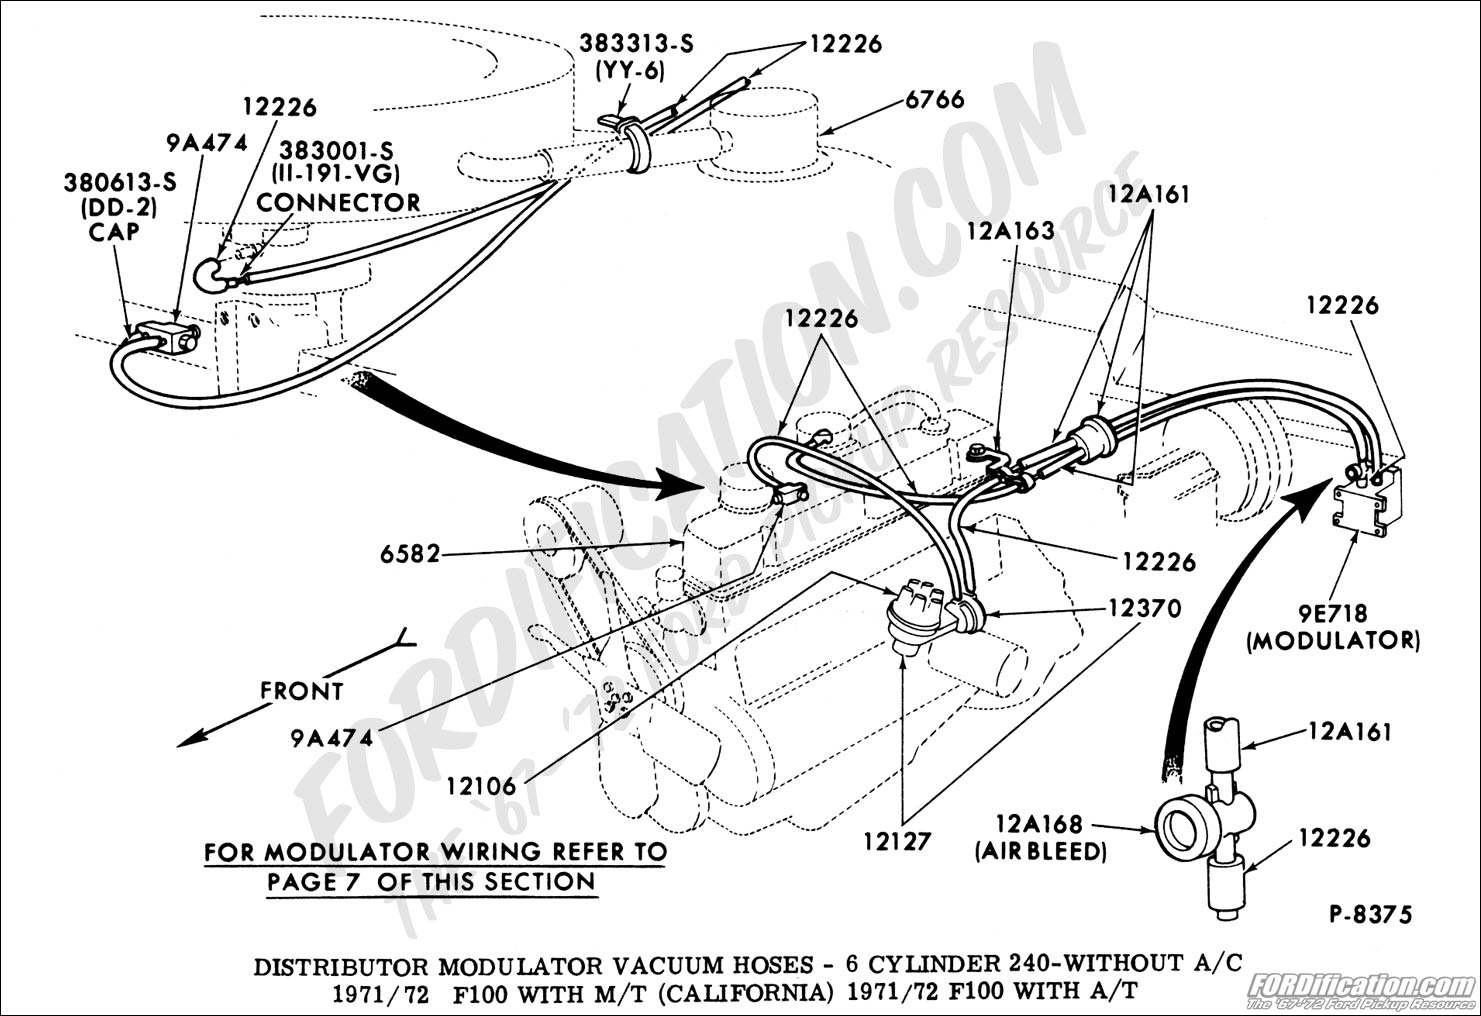 Exhaust Diagram For 97 F150 likewise 22dd12b95cb6bb61cbb0b23dfa17c94c likewise 8097239 likewise Bw4406 further 1313097 Vacuum Leak For Ac Blows Through Defrost Vents. on 97 ford f150 4x4 vacuum diagram